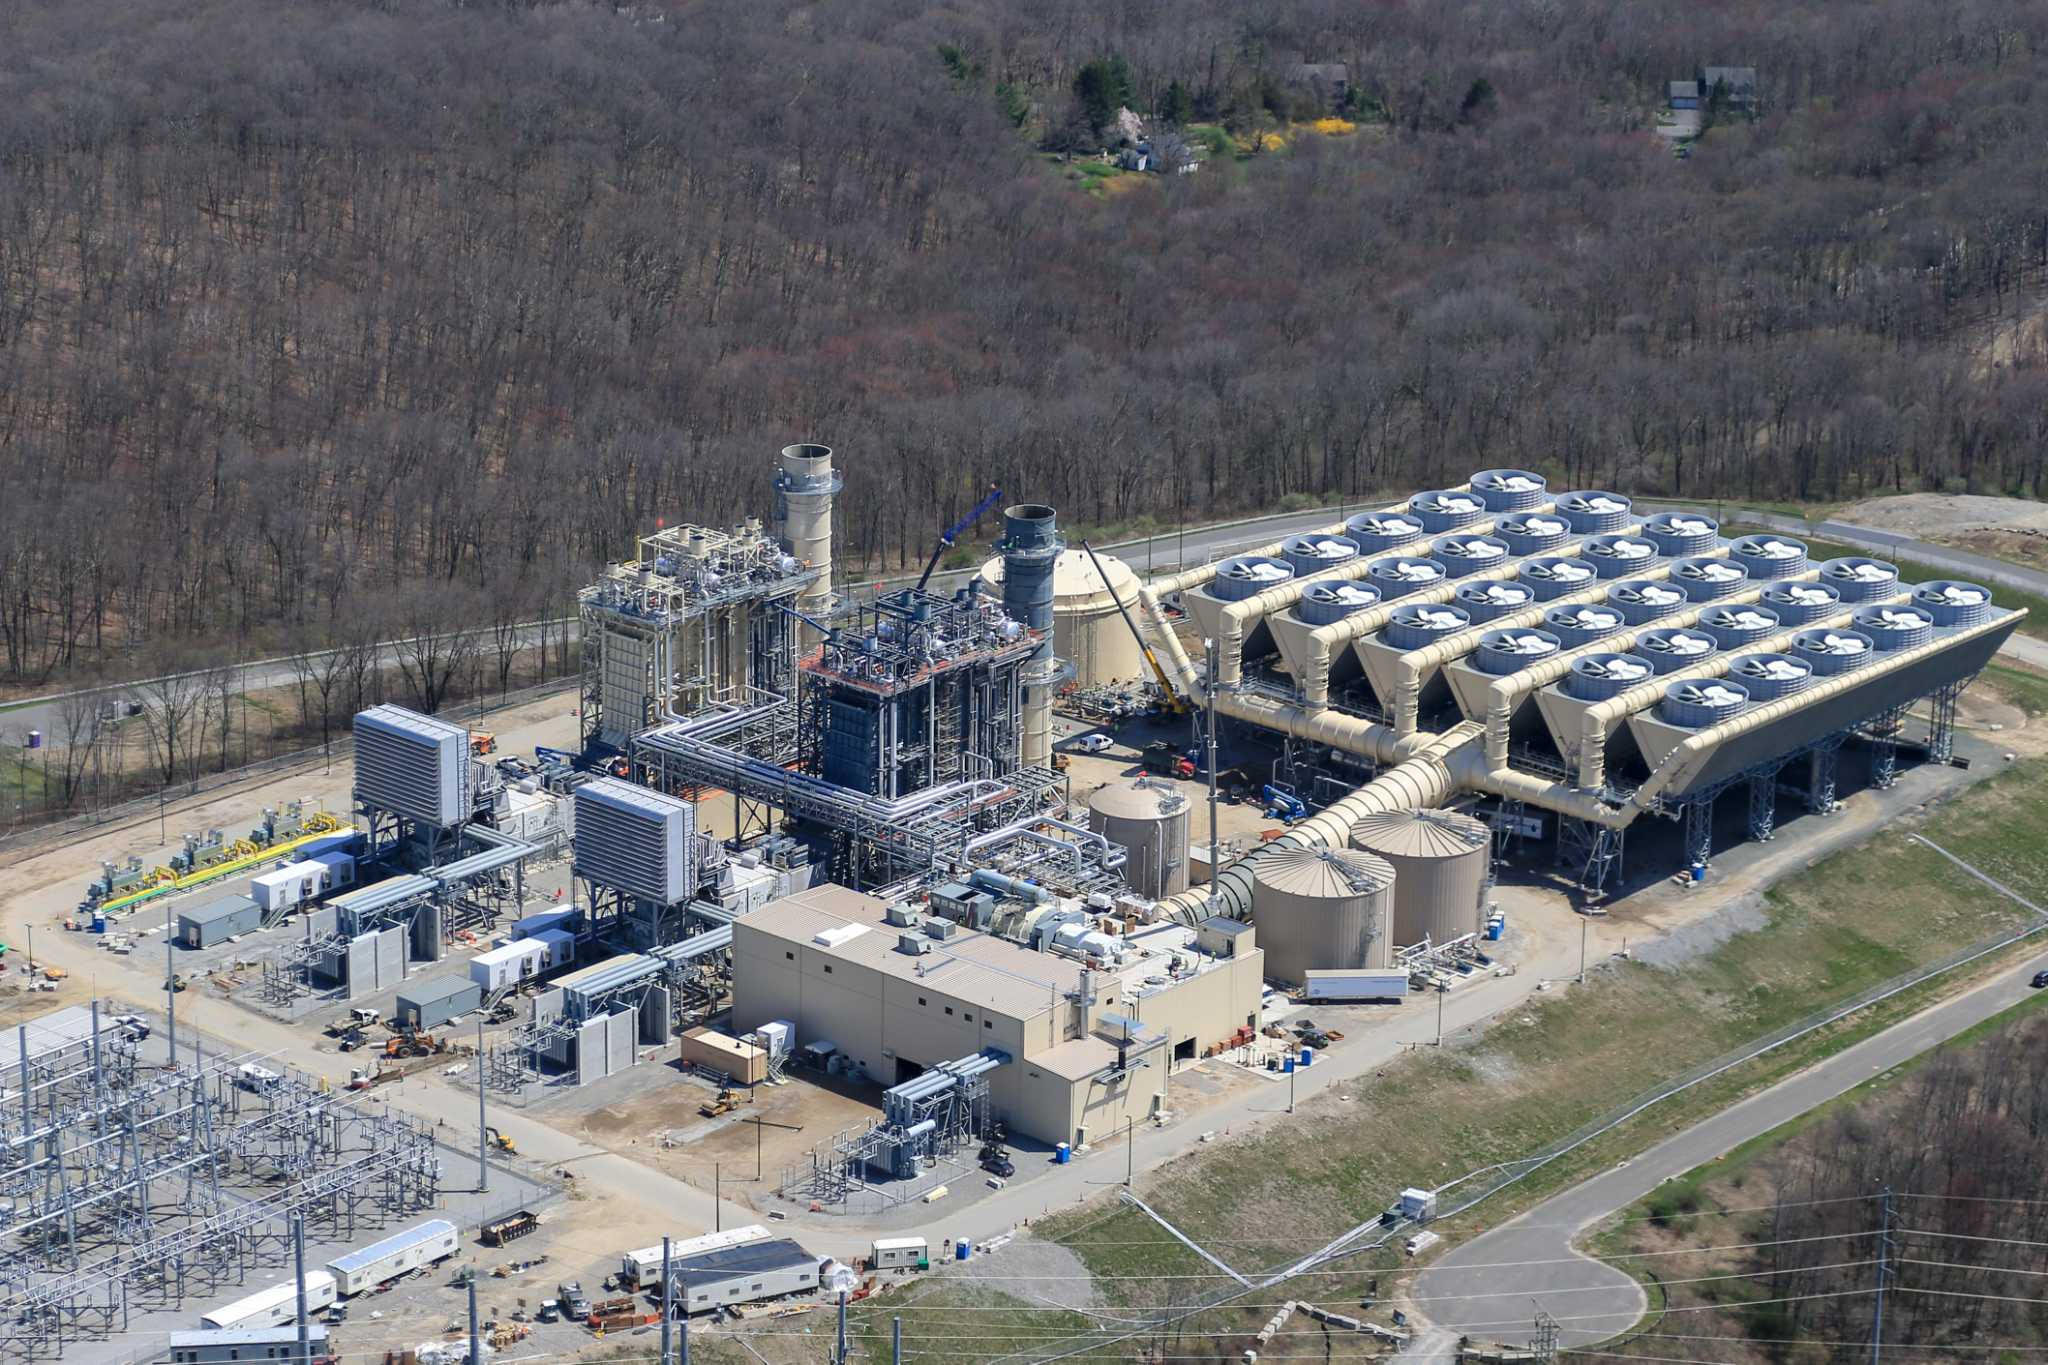 nhregister.com - Luther Turmelle - Israeli company seeks to buy Oxford power plant owner